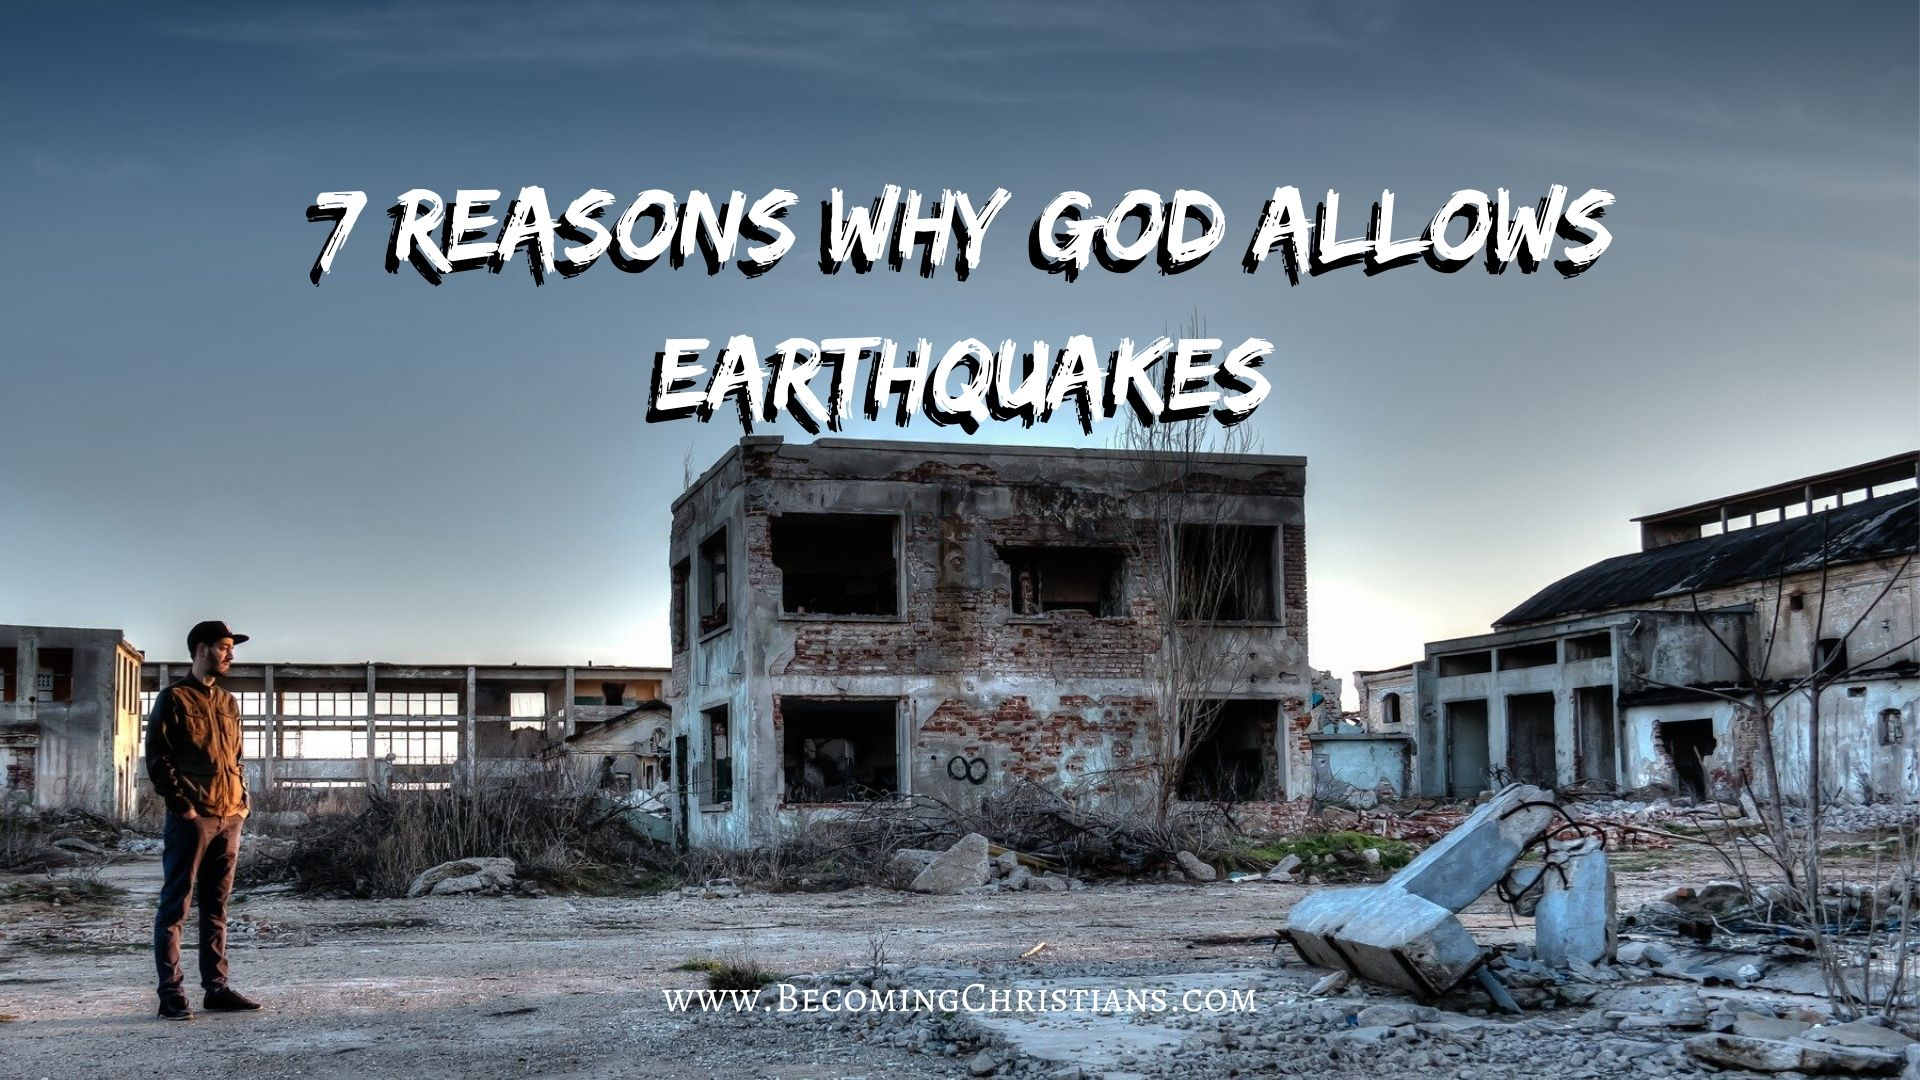 7 Reasons Why God Allow Earthquakes